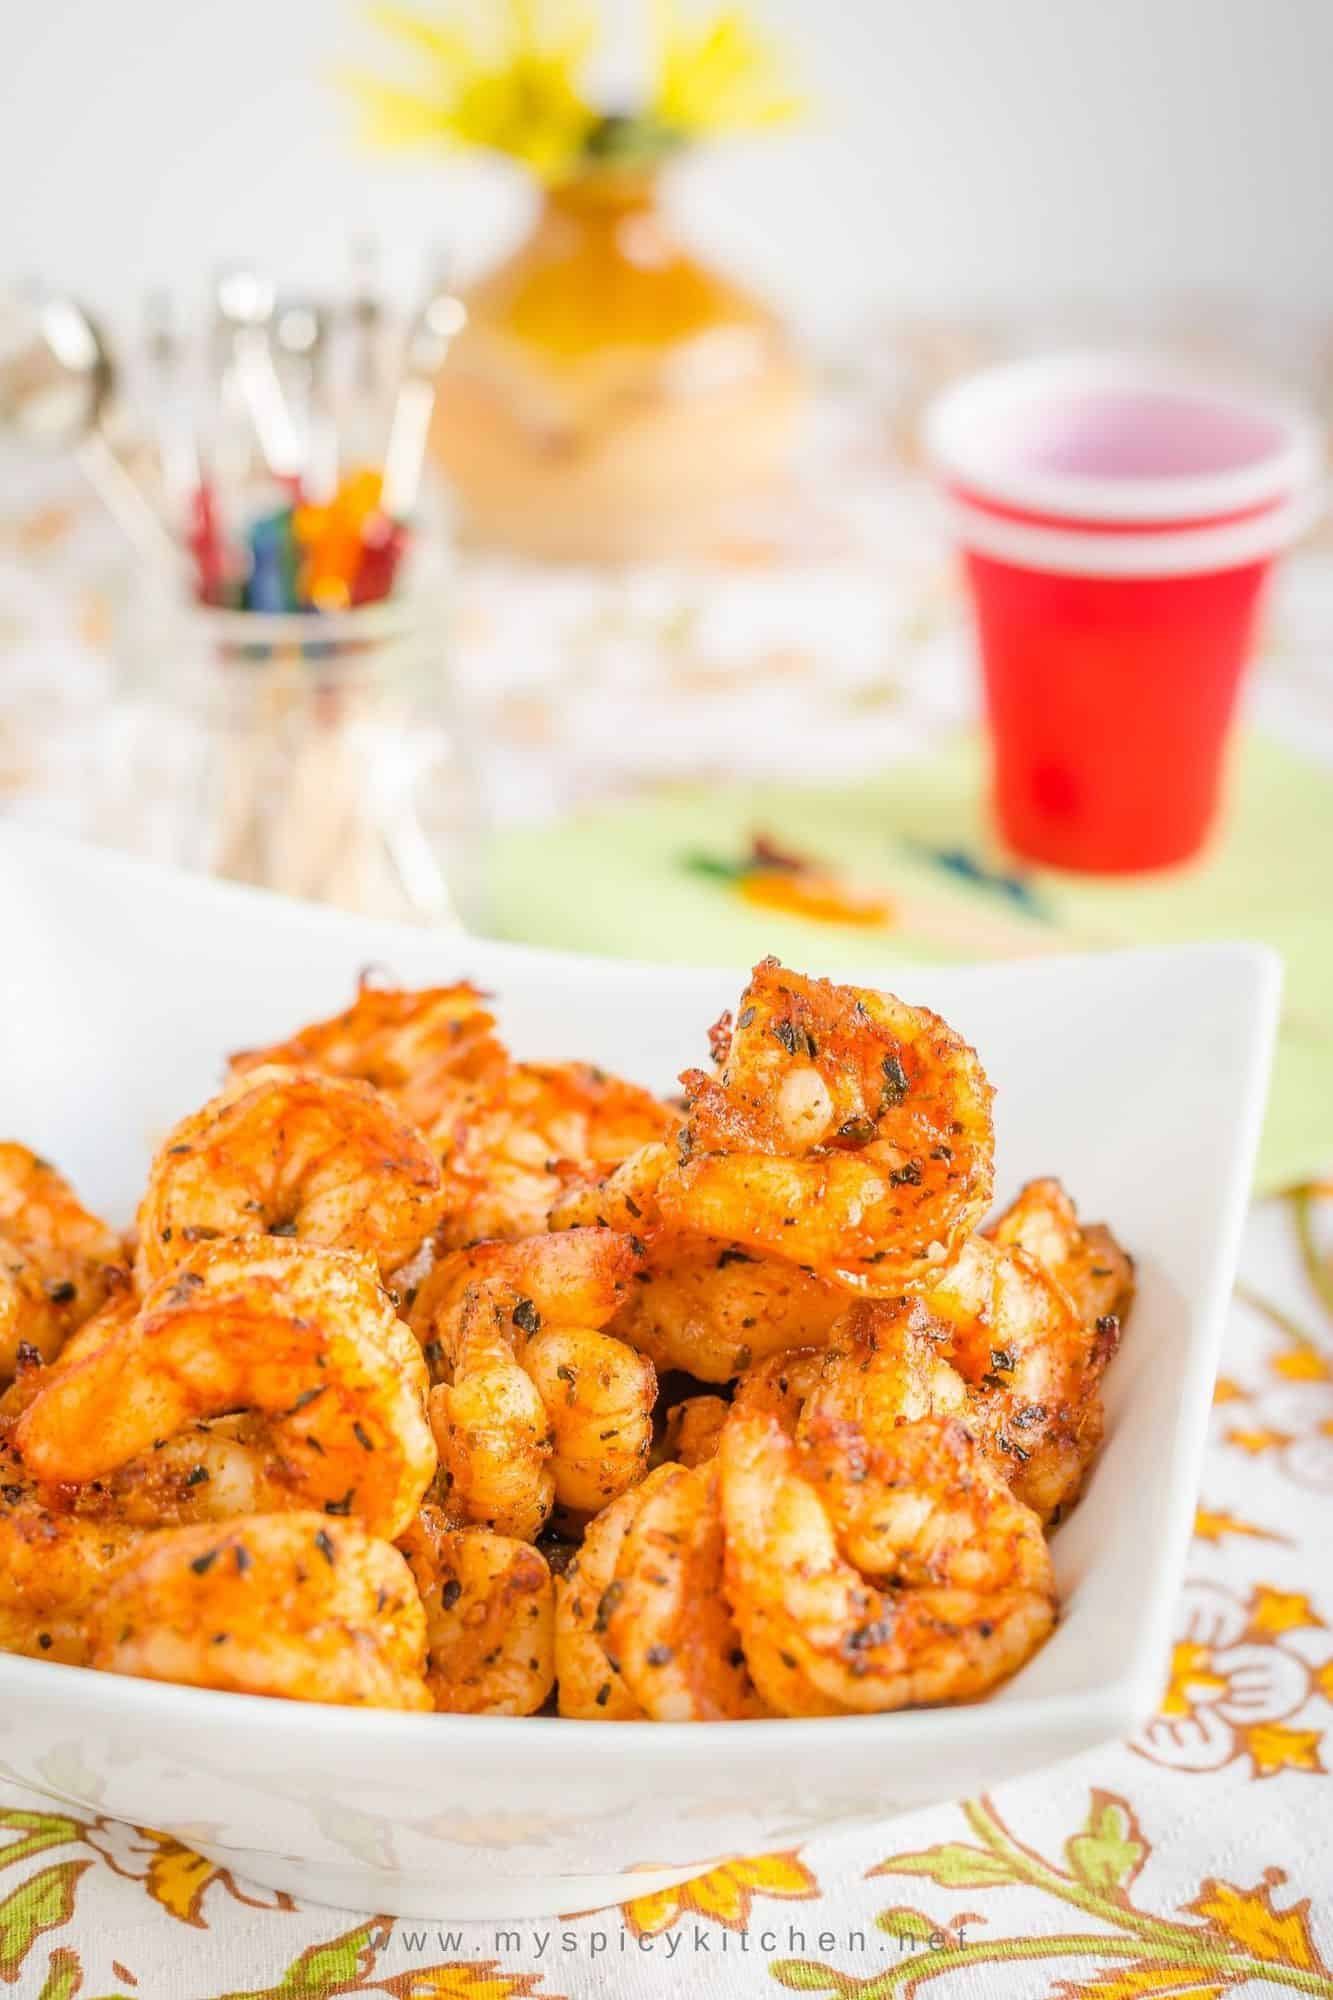 A bowl of broiled shrimp.